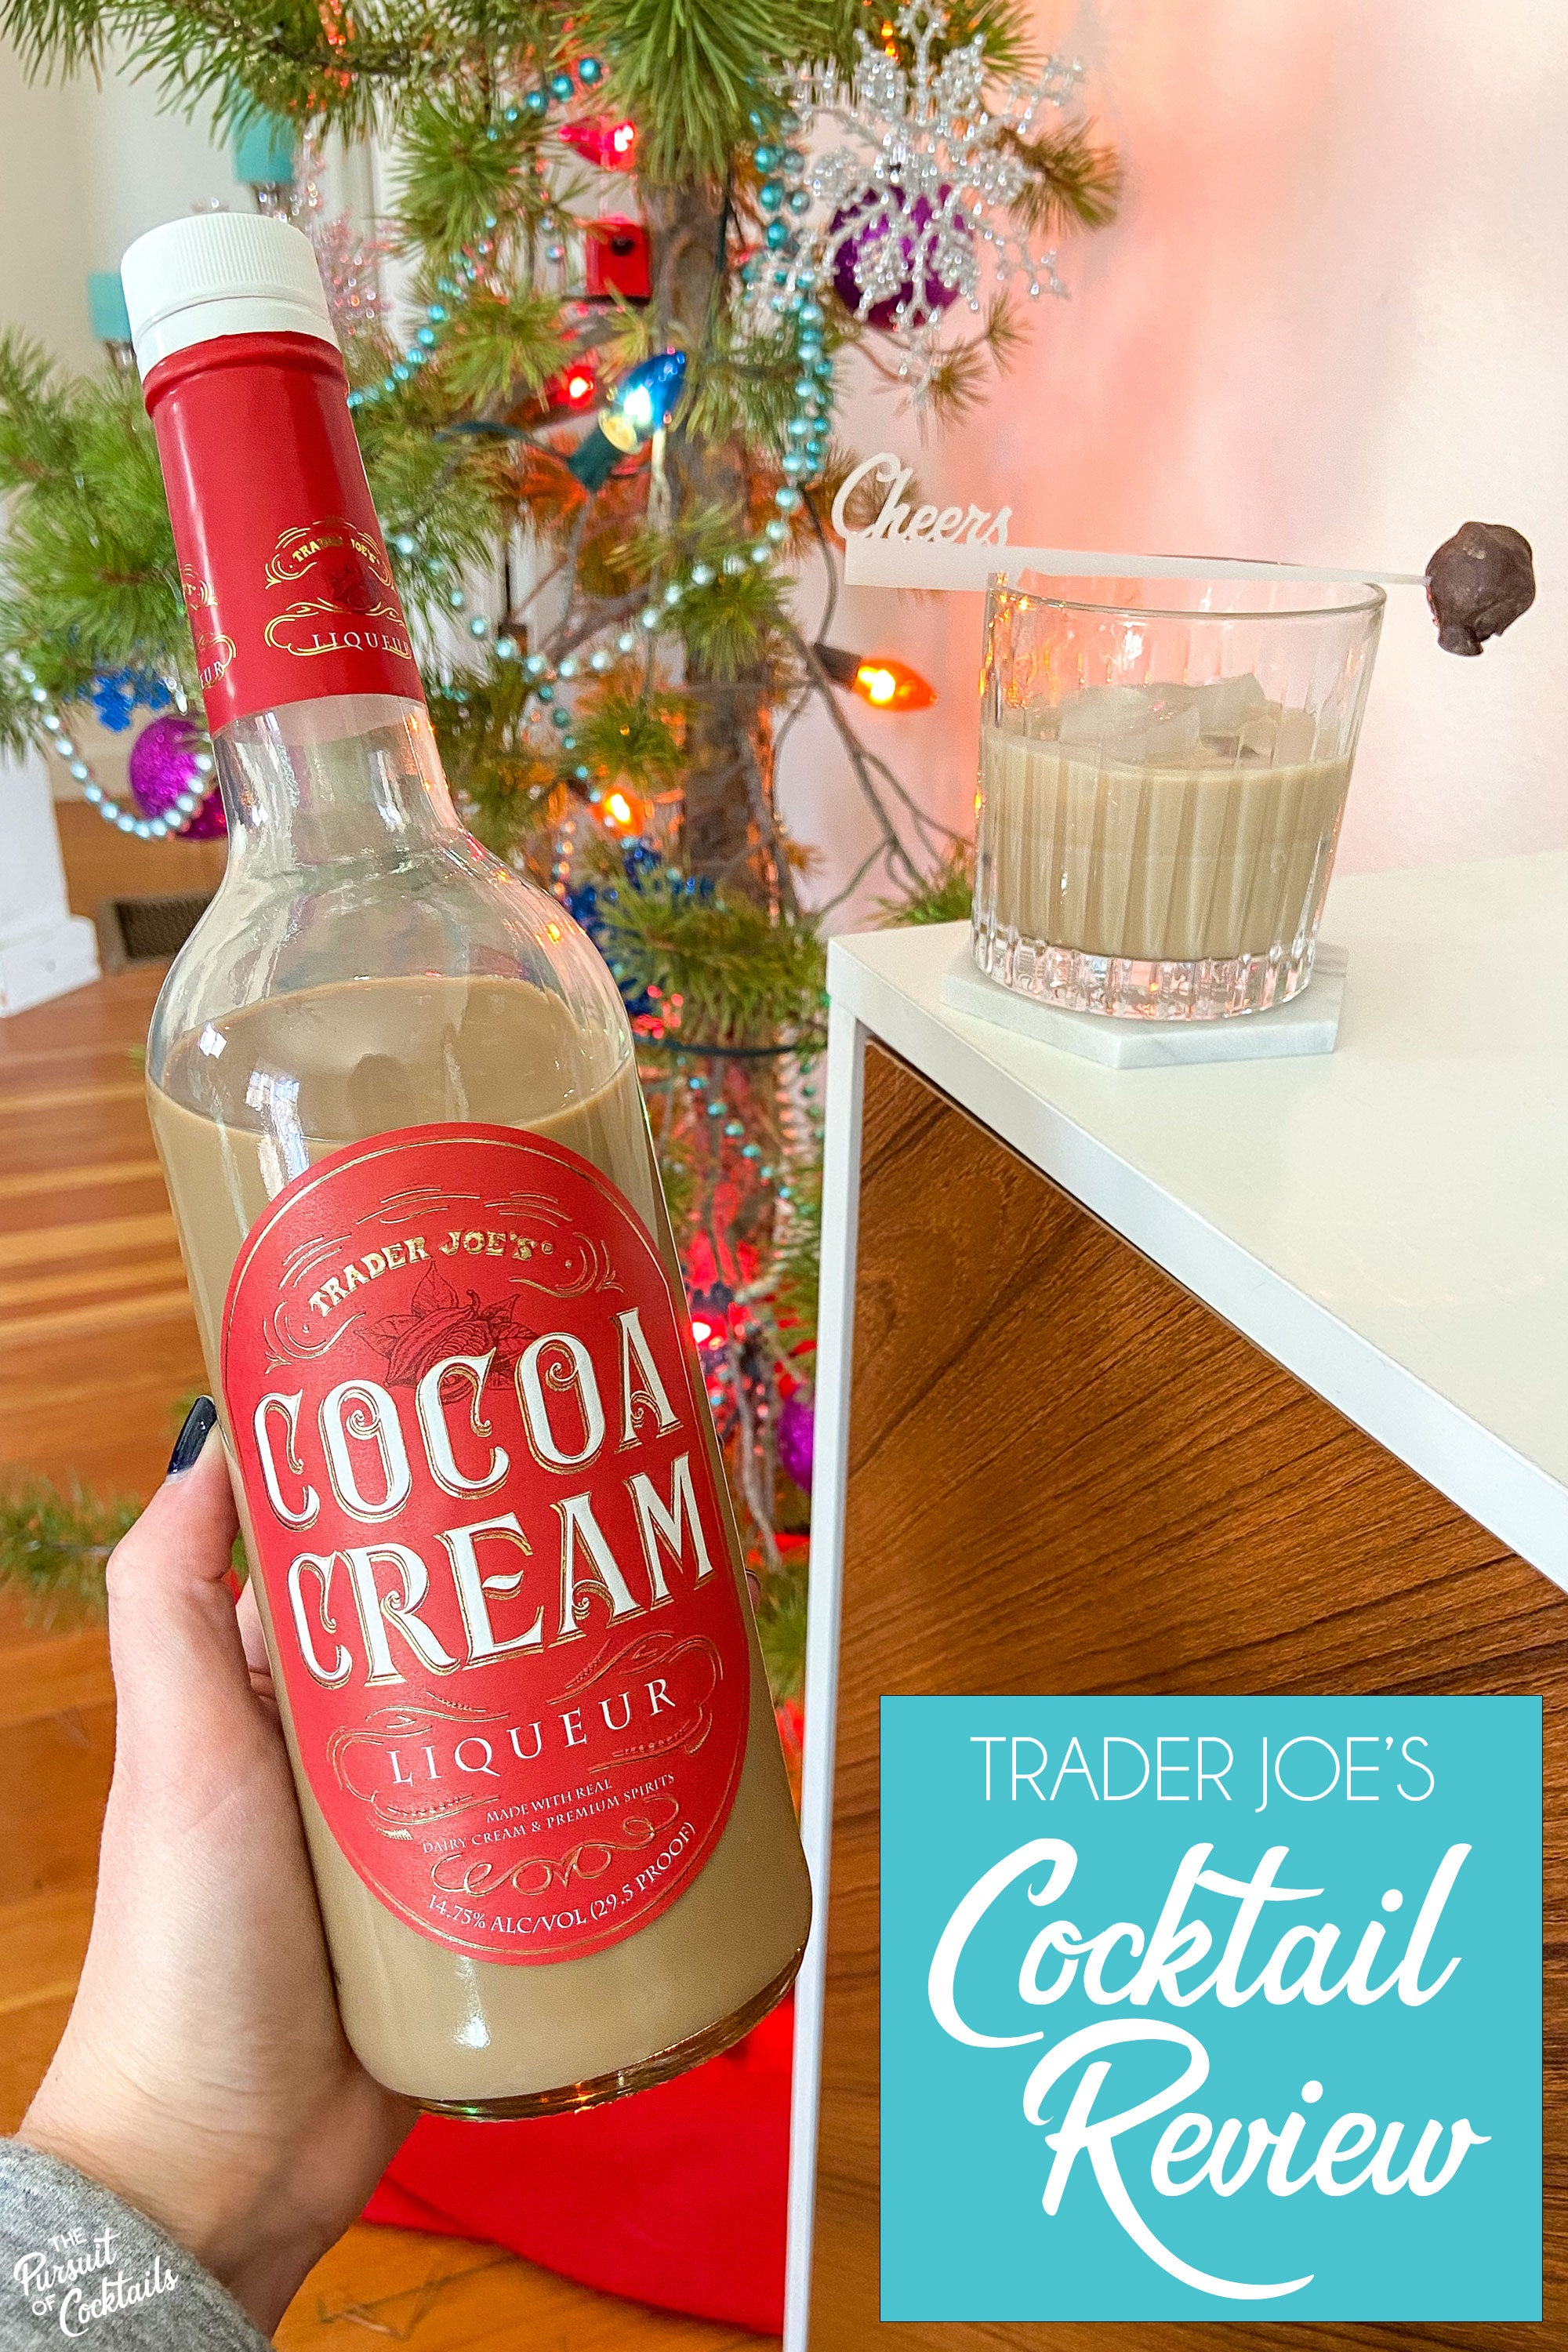 Trader Joe's Cocoa Cream liqueur review by The Pursuit of Cocktail